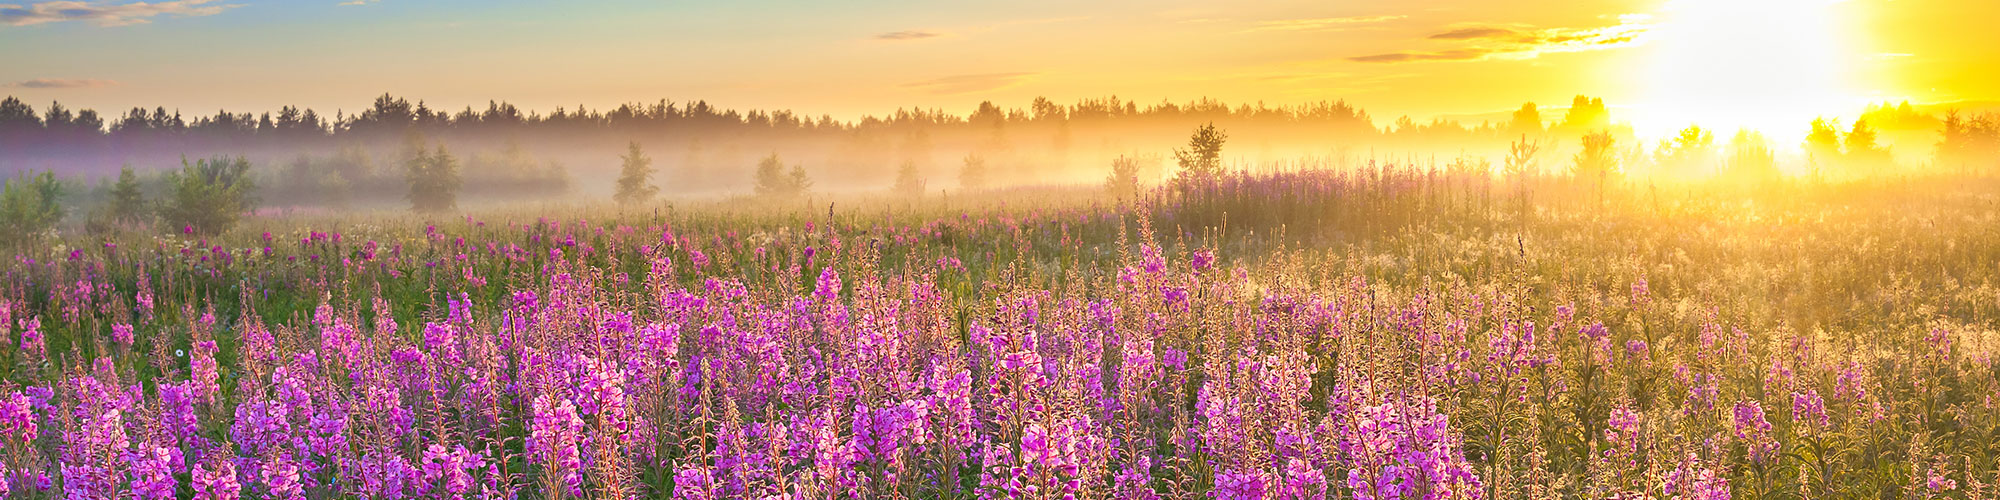 Purple Flowers and Sunrise